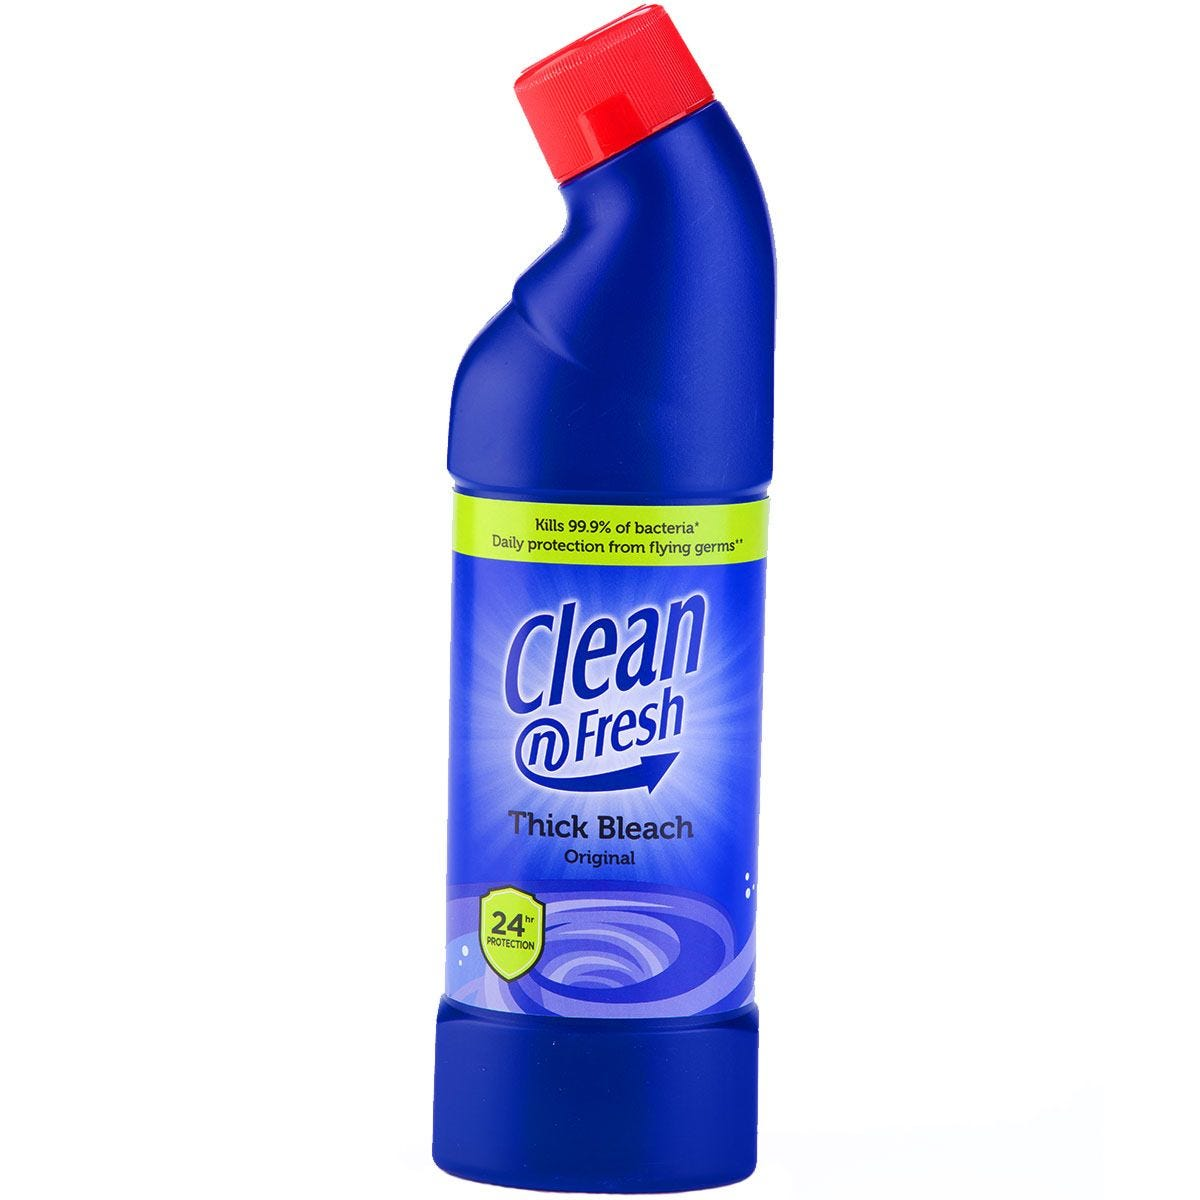 Clean 'n' Fresh Original Thick Bleach - 750ml